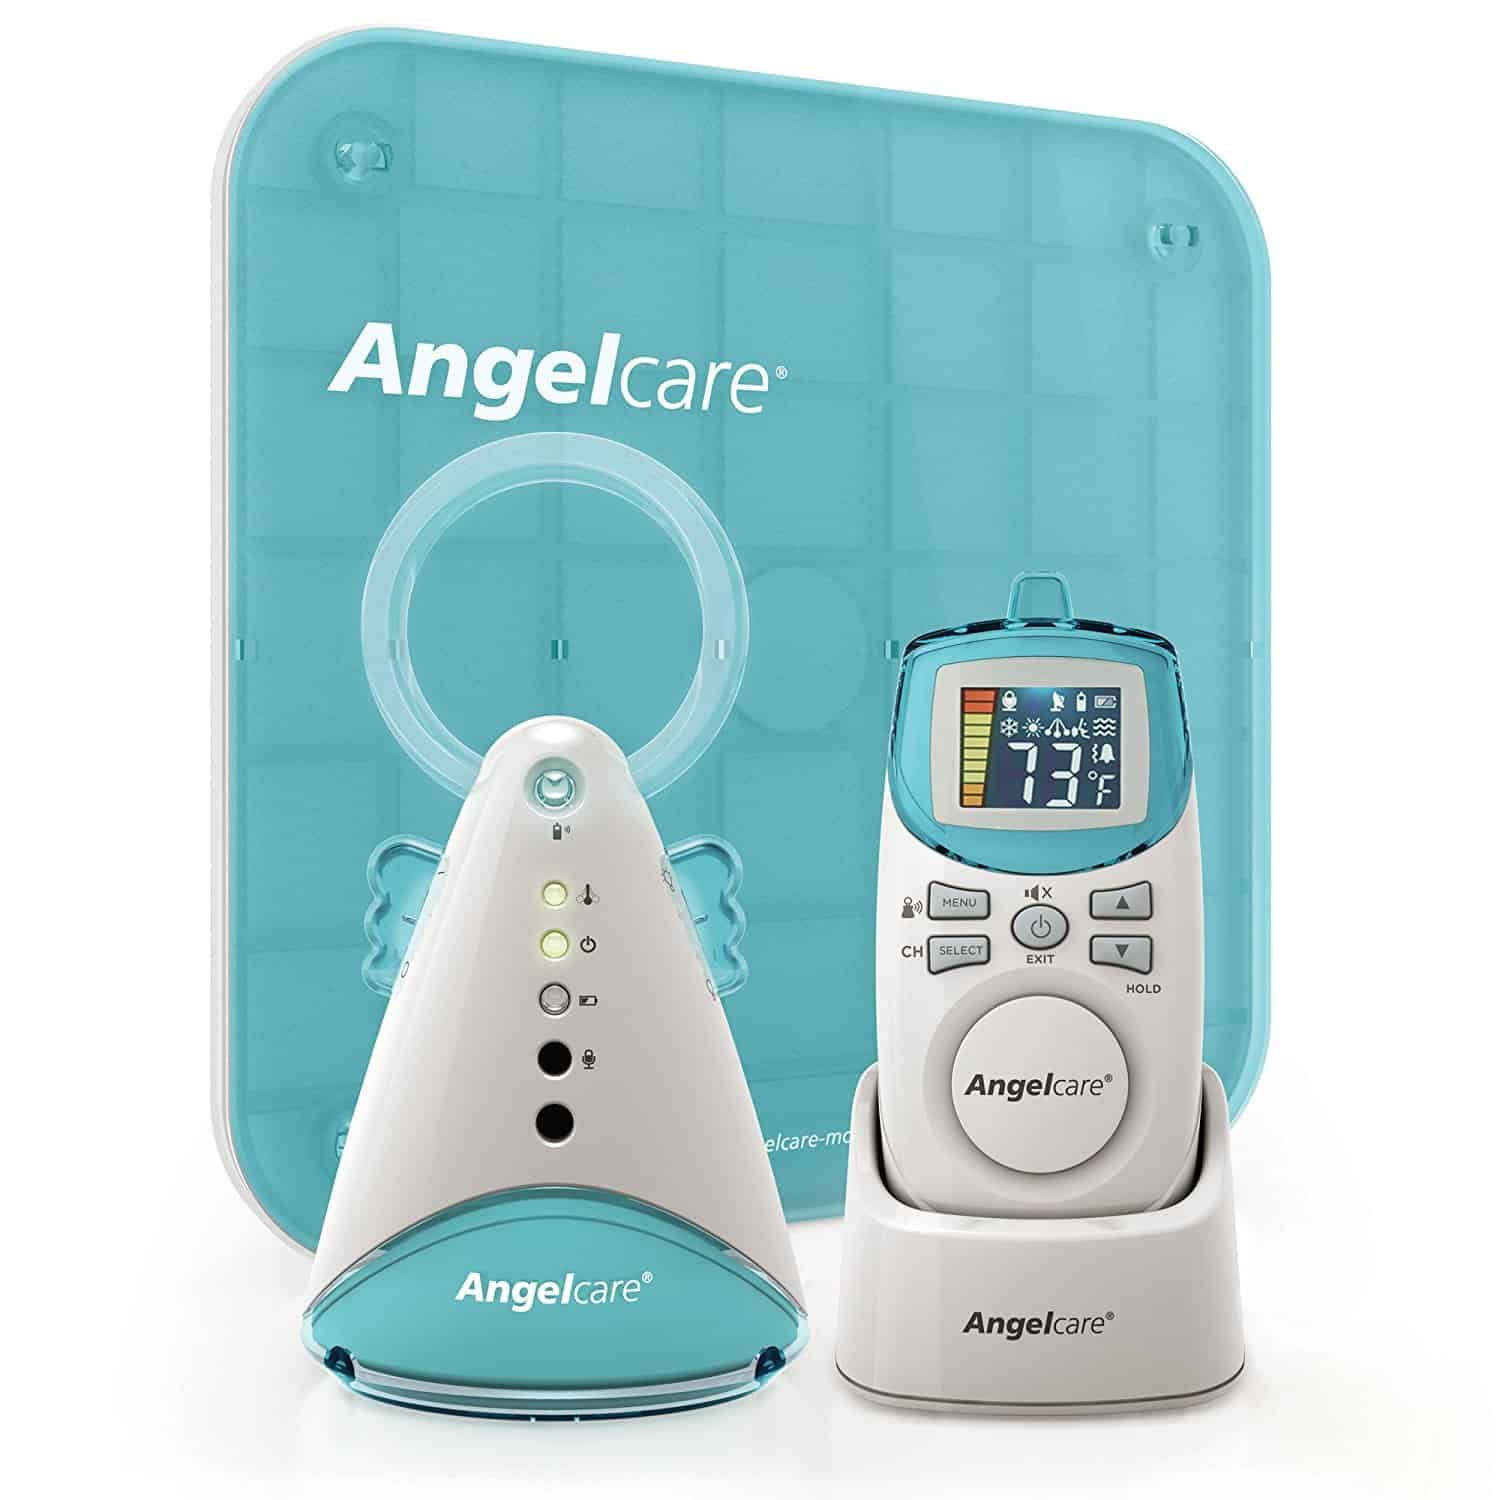 Smart Baby Monitor review: Angelcare